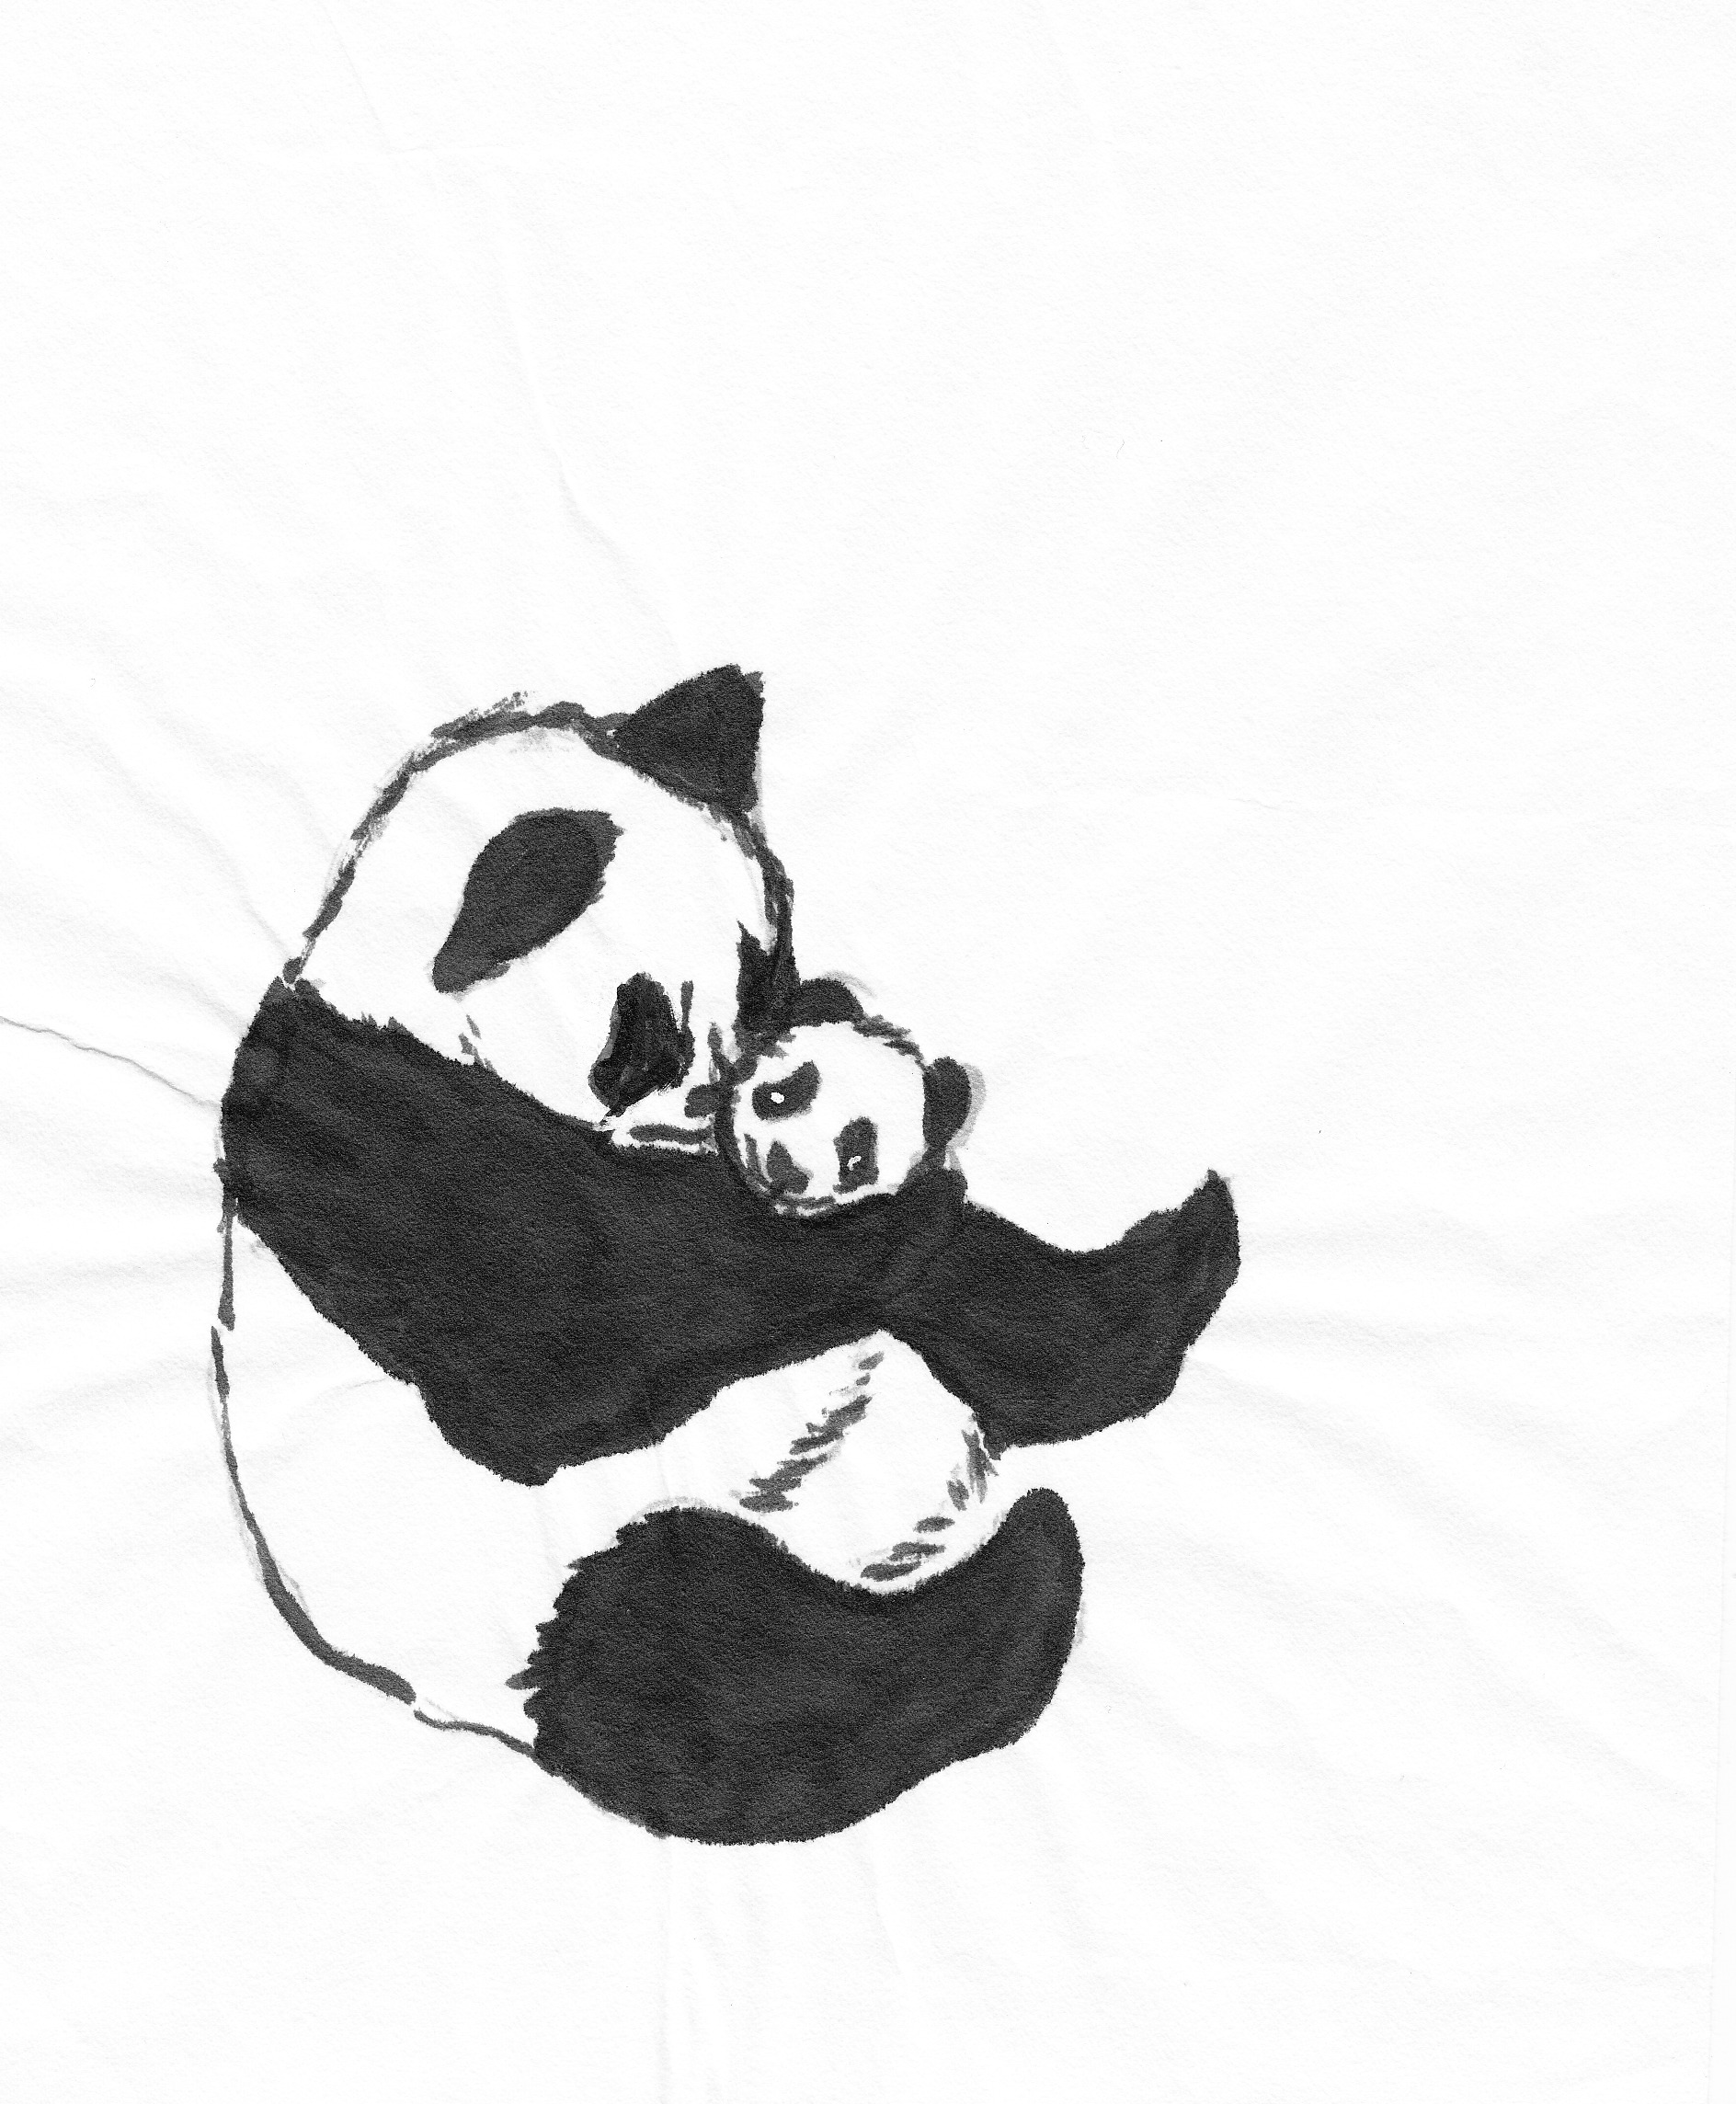 Download Wallpaper Home Screen Panda - pandamacub  Perfect Image Reference_457442.jpg